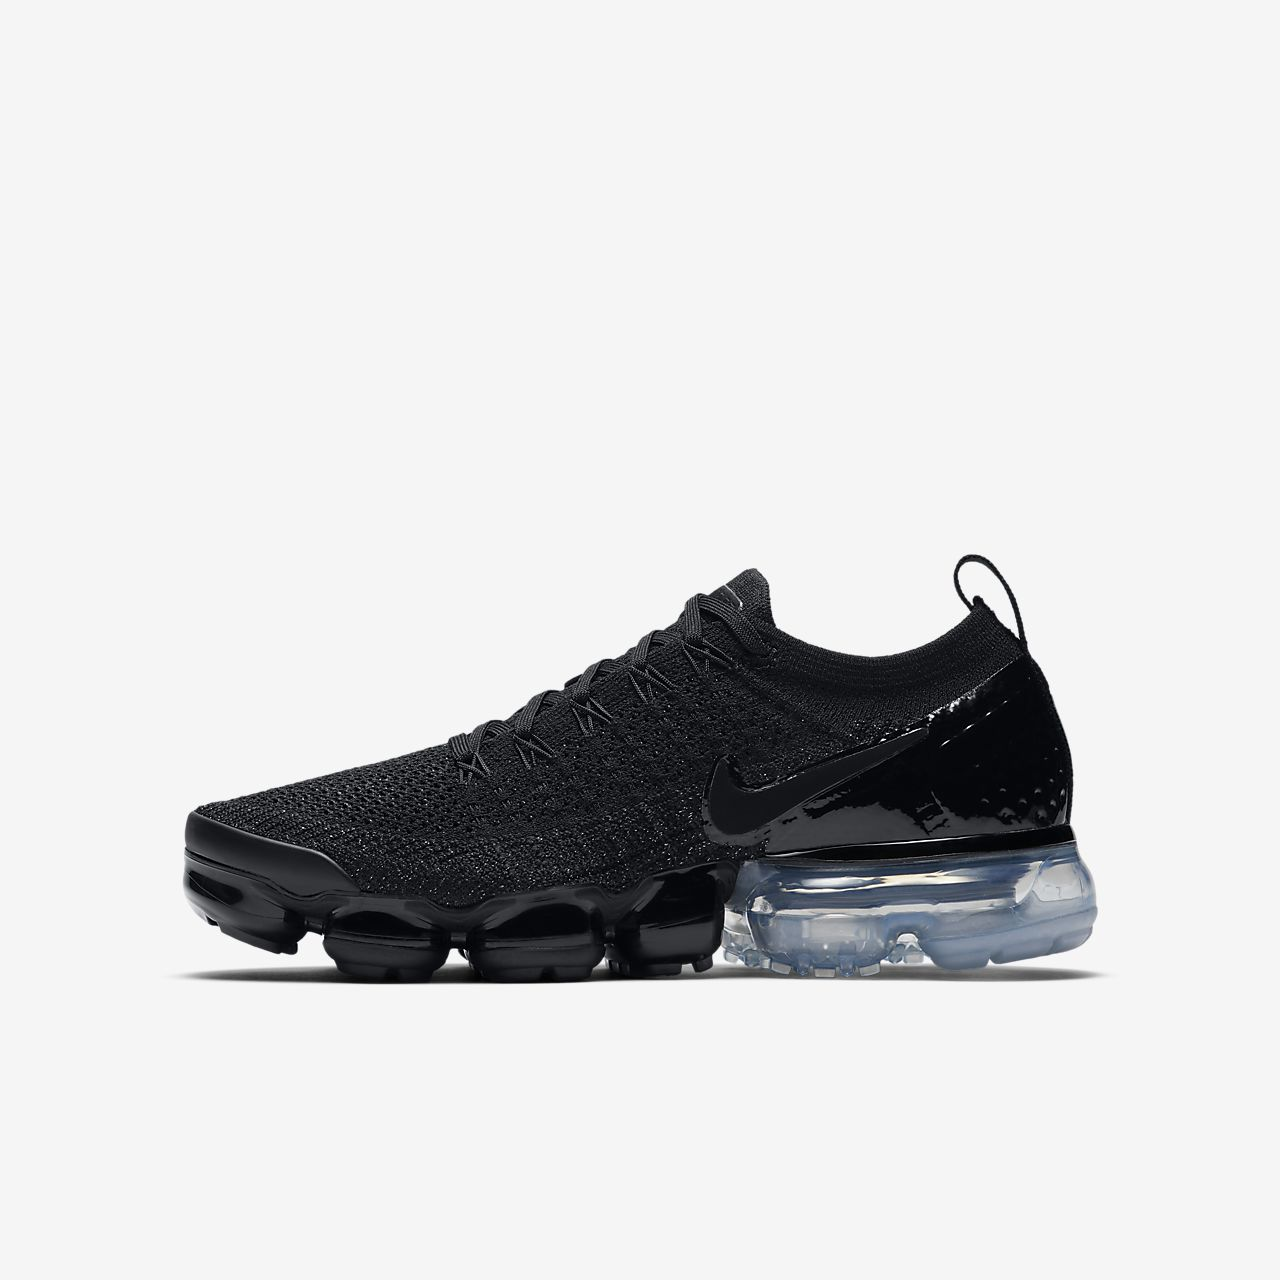 c715665a25a6 ... march 29 2018 190. color white black hydrogen blue pink beam b96f0  f3bfc  amazon nike air vapormax flyknit 2 womens shoe 68211 7b564